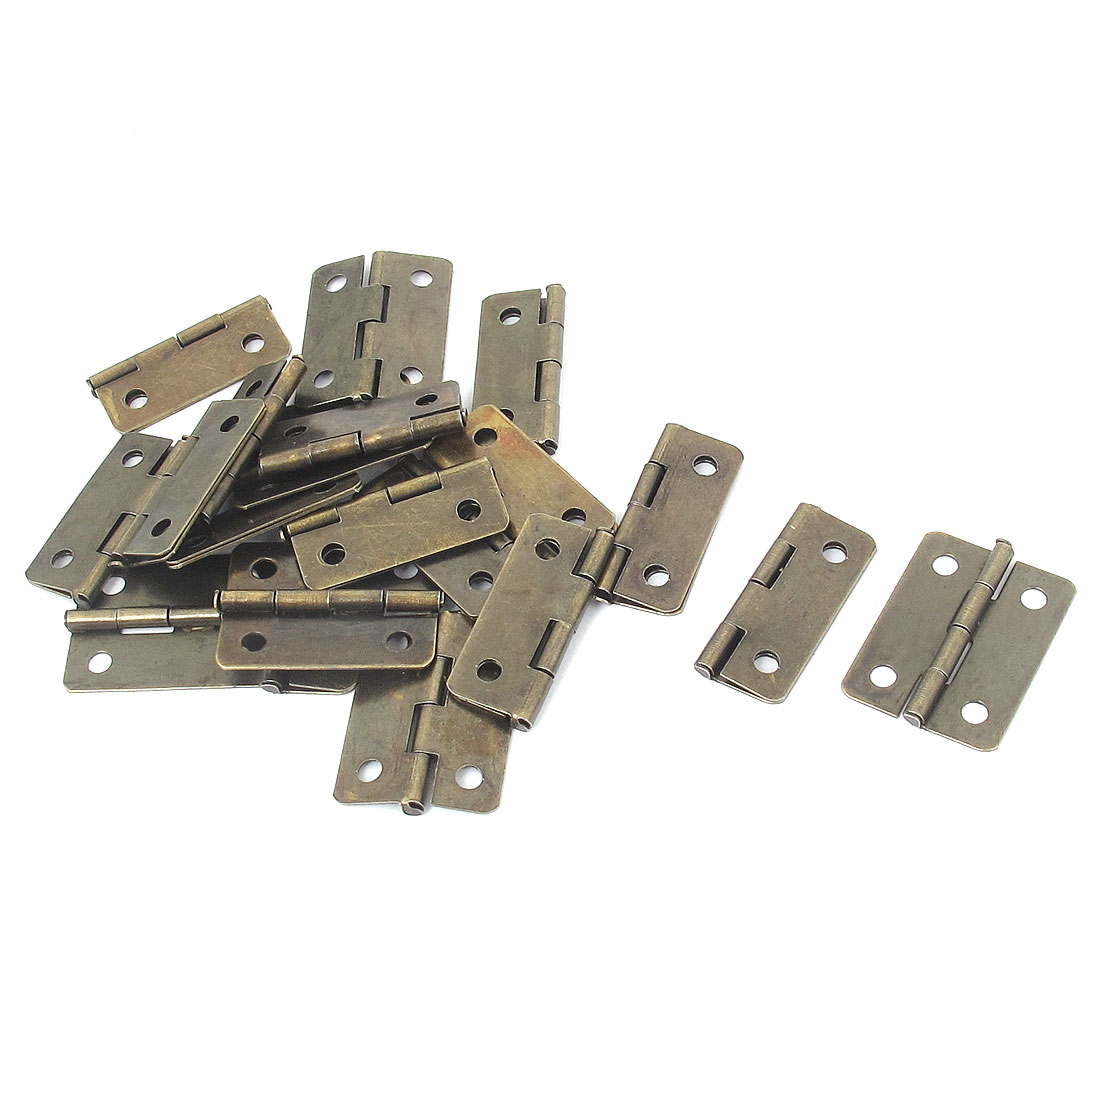 "1"" Length Foldable Screw Mounting Door Butt Hinges Hardware Bronze Tone 20pcs"